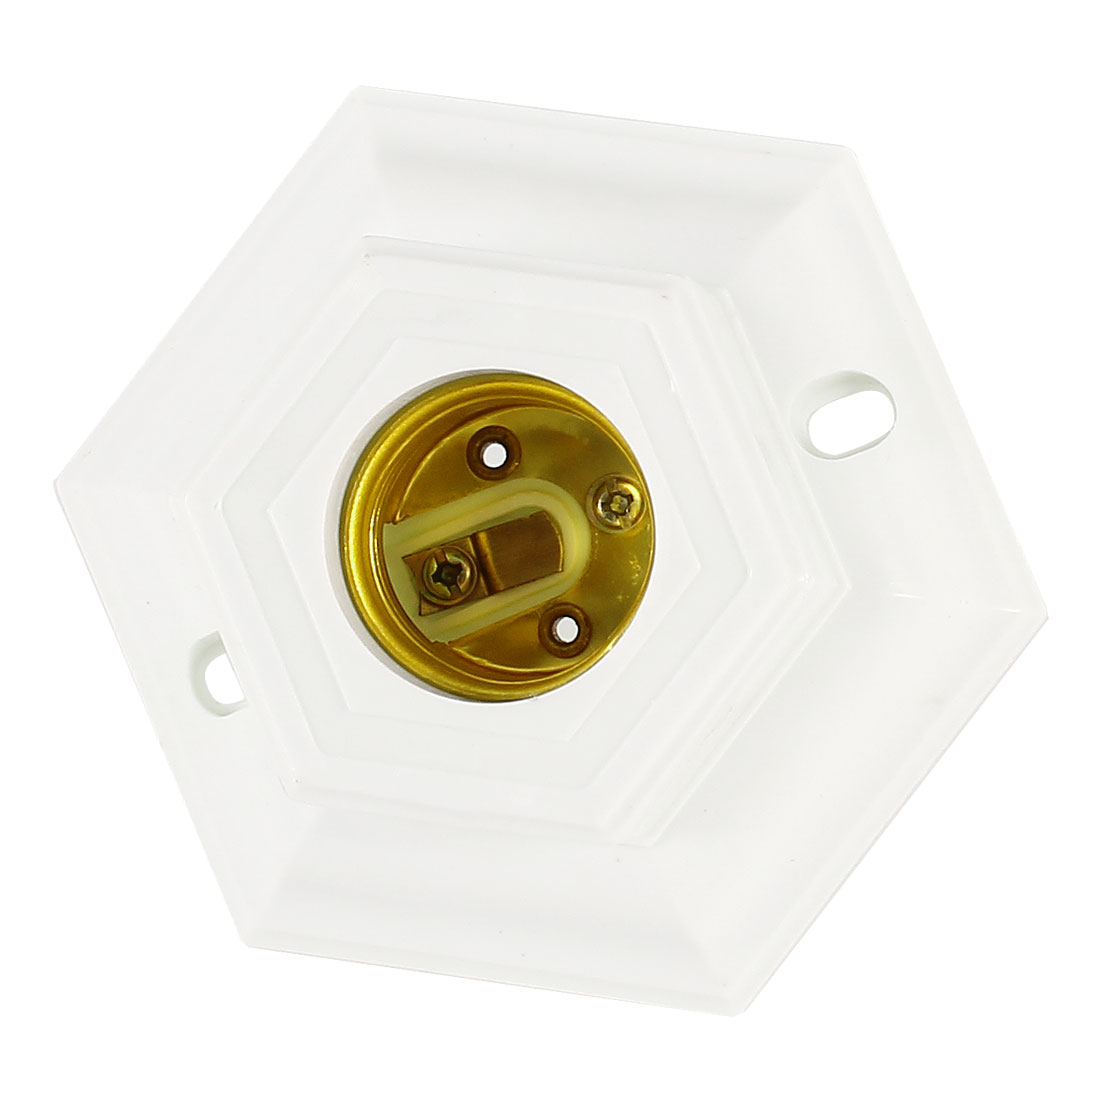 AC 250V 6A 10cm Dia Hexagonal White Housing E27 Screw Base Lamp Light Holder